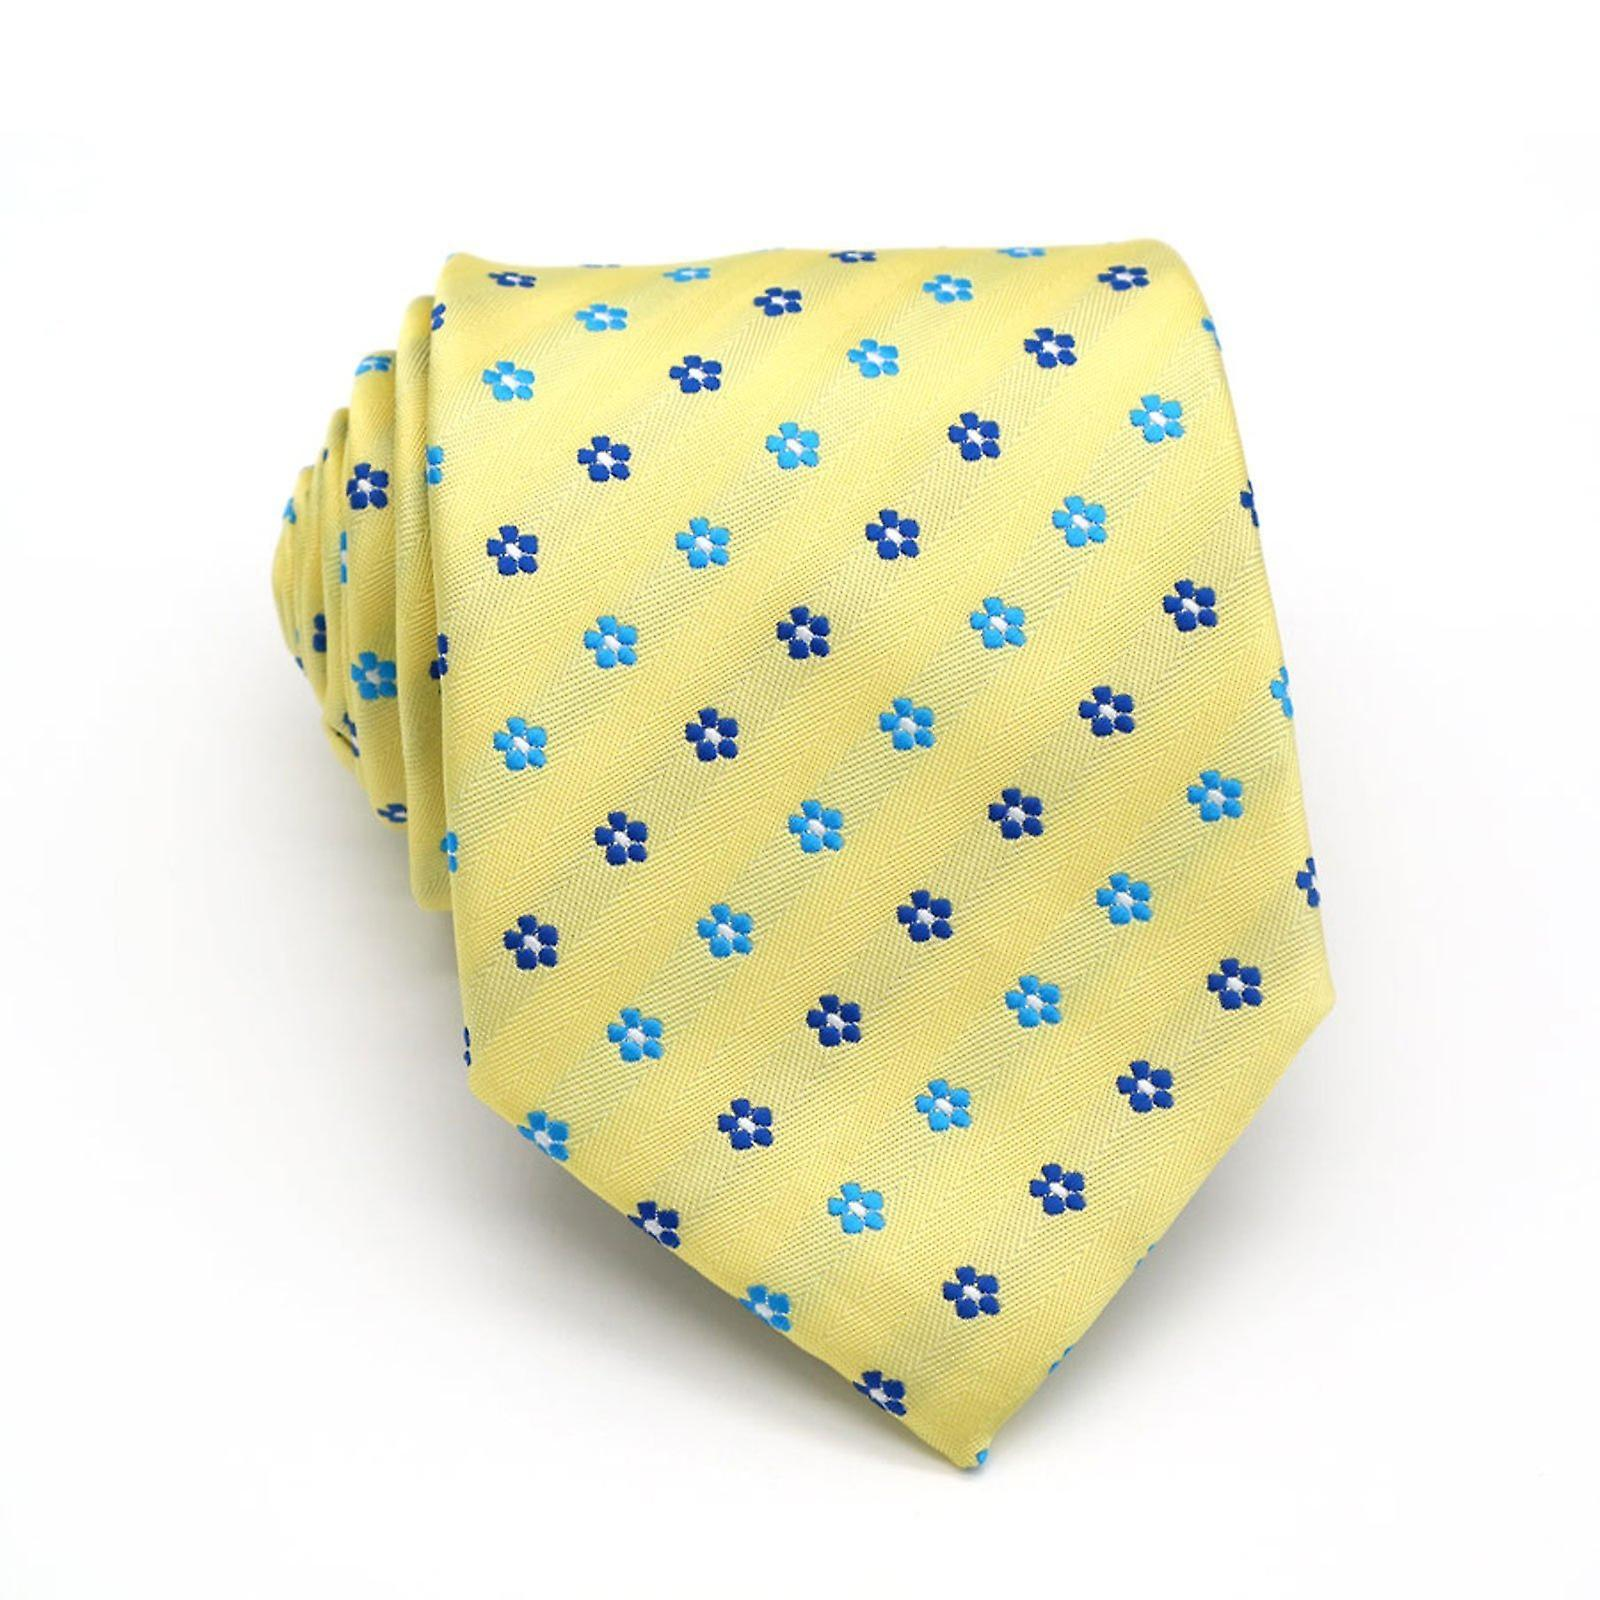 Canary yellow & blue floral tie & pocket square set